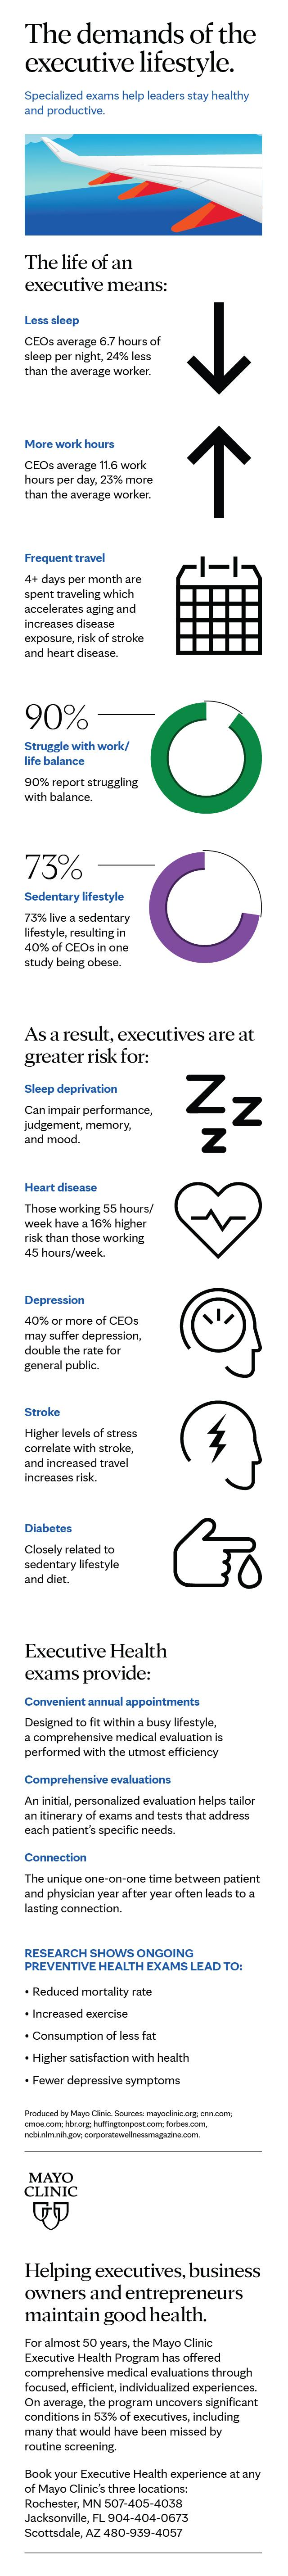 infographic for demanding lifestyle of executives